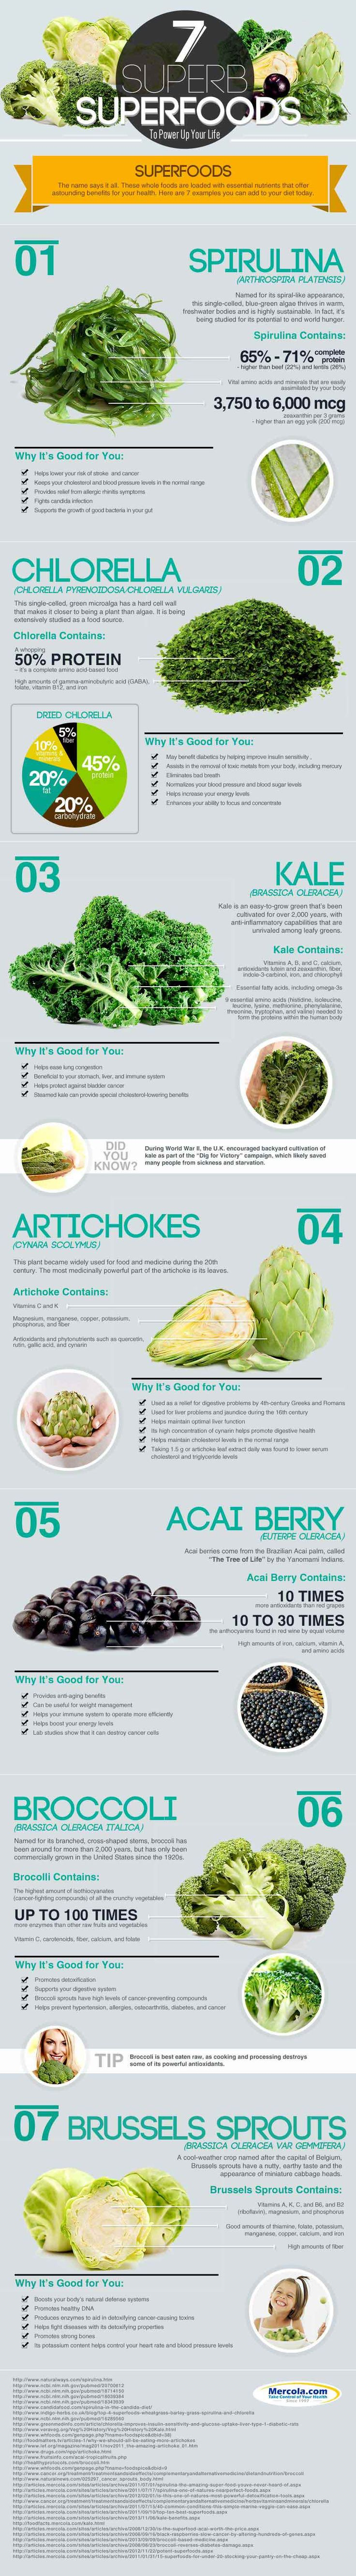 Tips to to Power Up Your Life with 7 Superb Superfoods - Tipsographic http://stores.ebay.com/nutritionalwellnessstore